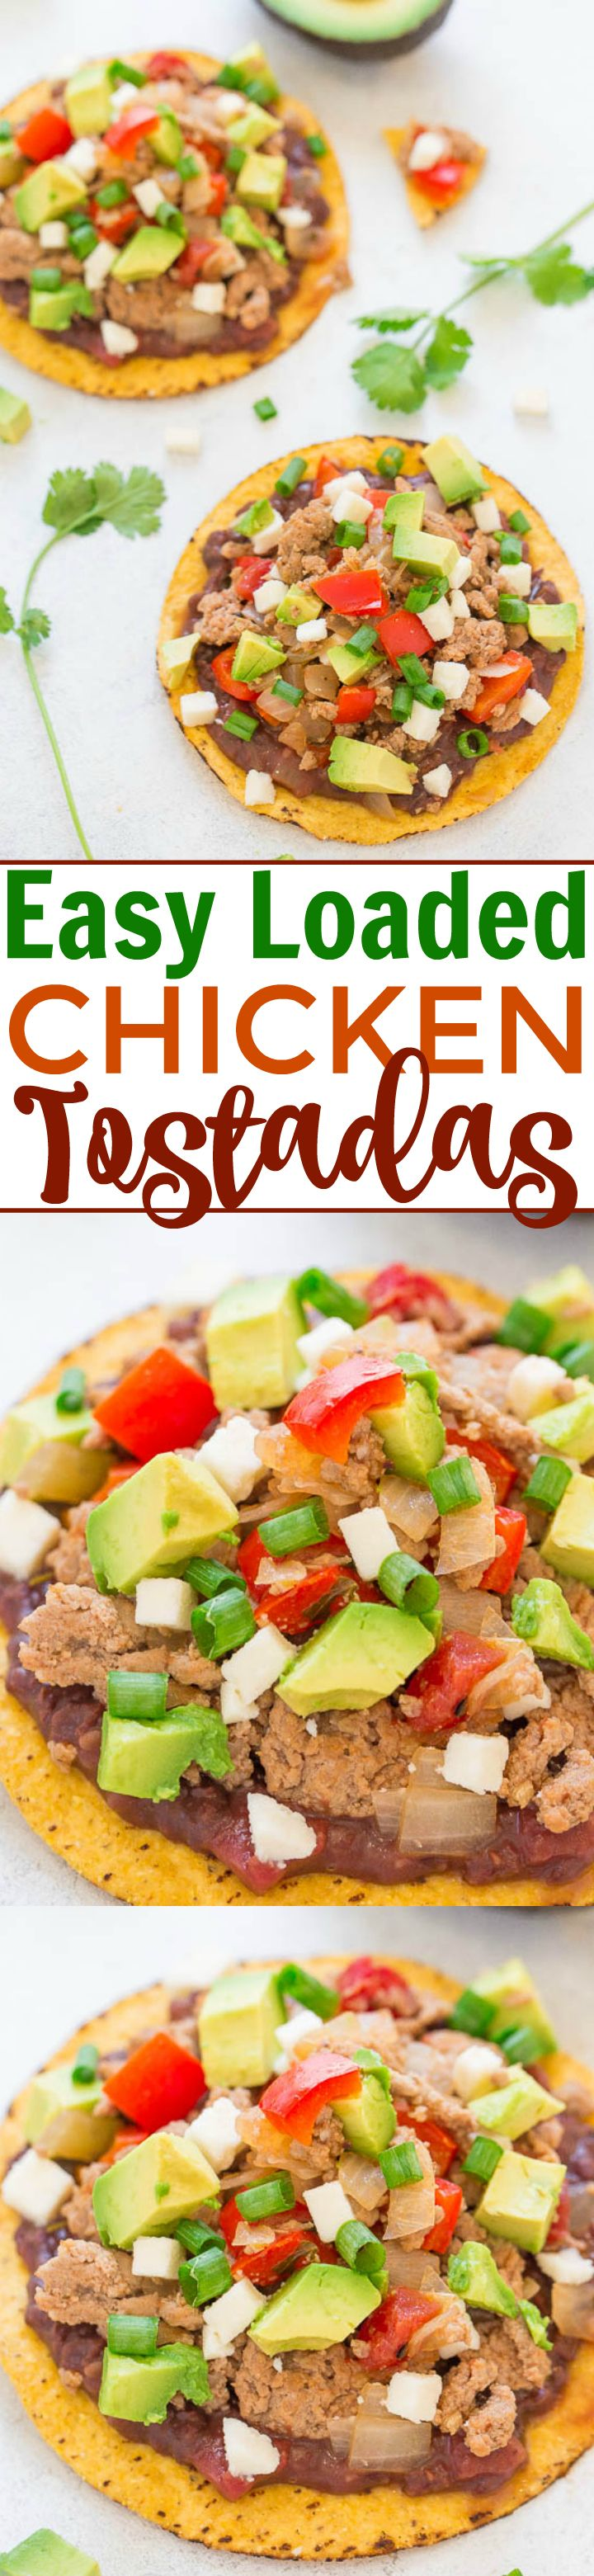 Easy Loaded Chicken Tostadas - Ready in 20 minutes and LOADED to the max!! Chicken, refried beans, peppers, salsa, cheese, and more!! Great party appetizer or EASY weeknight dinner!!